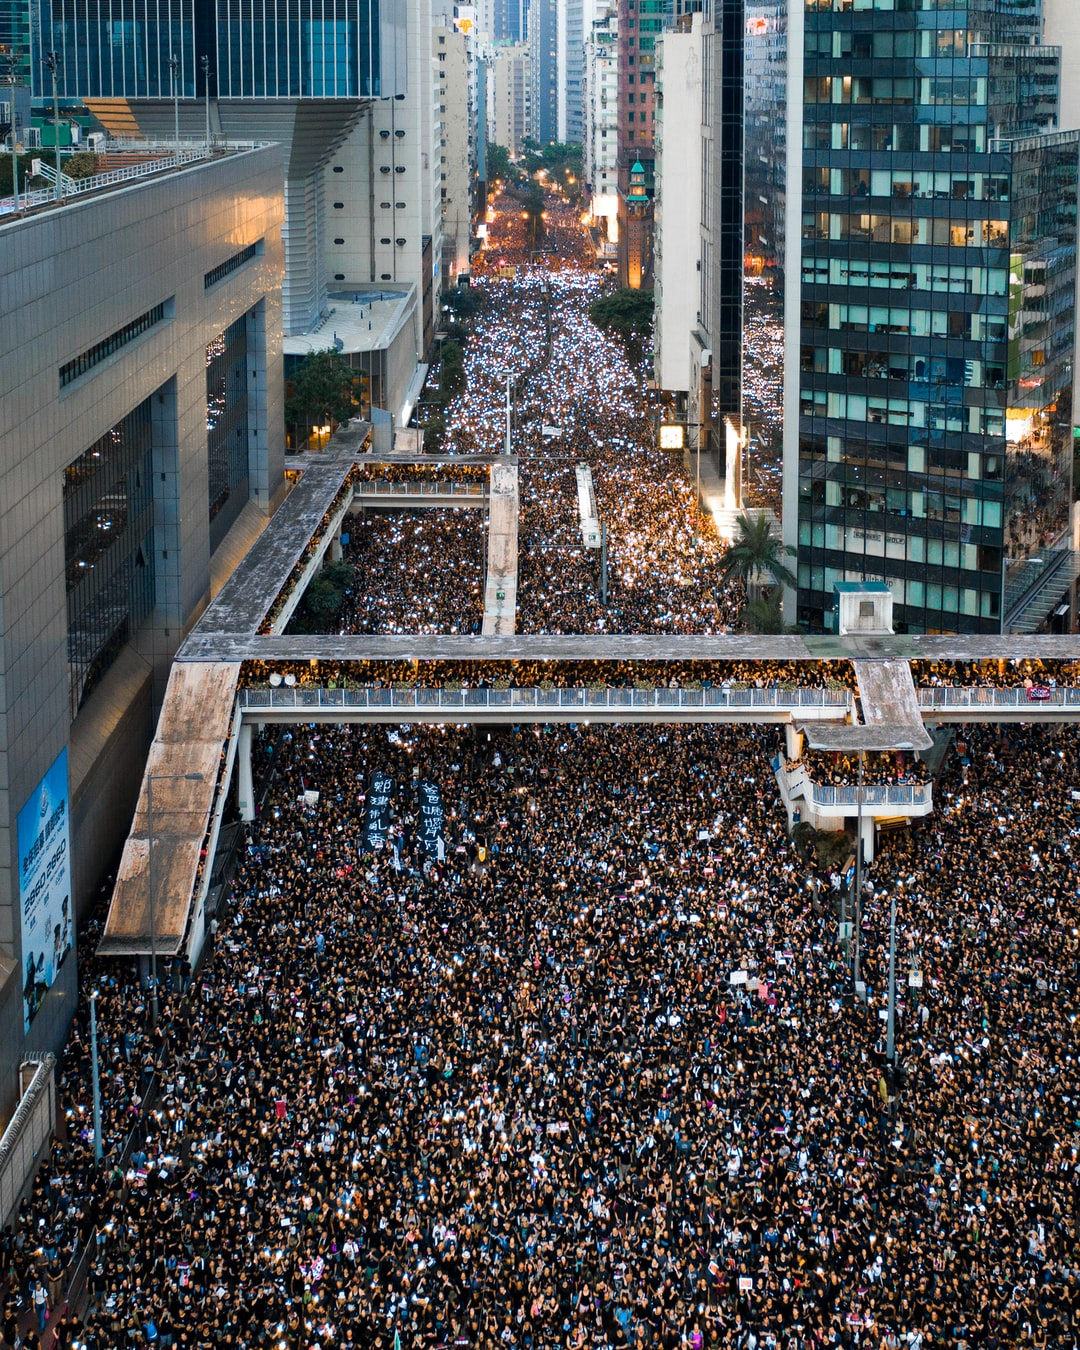 2 million people protesting in Hong Kong on 16 June 2019